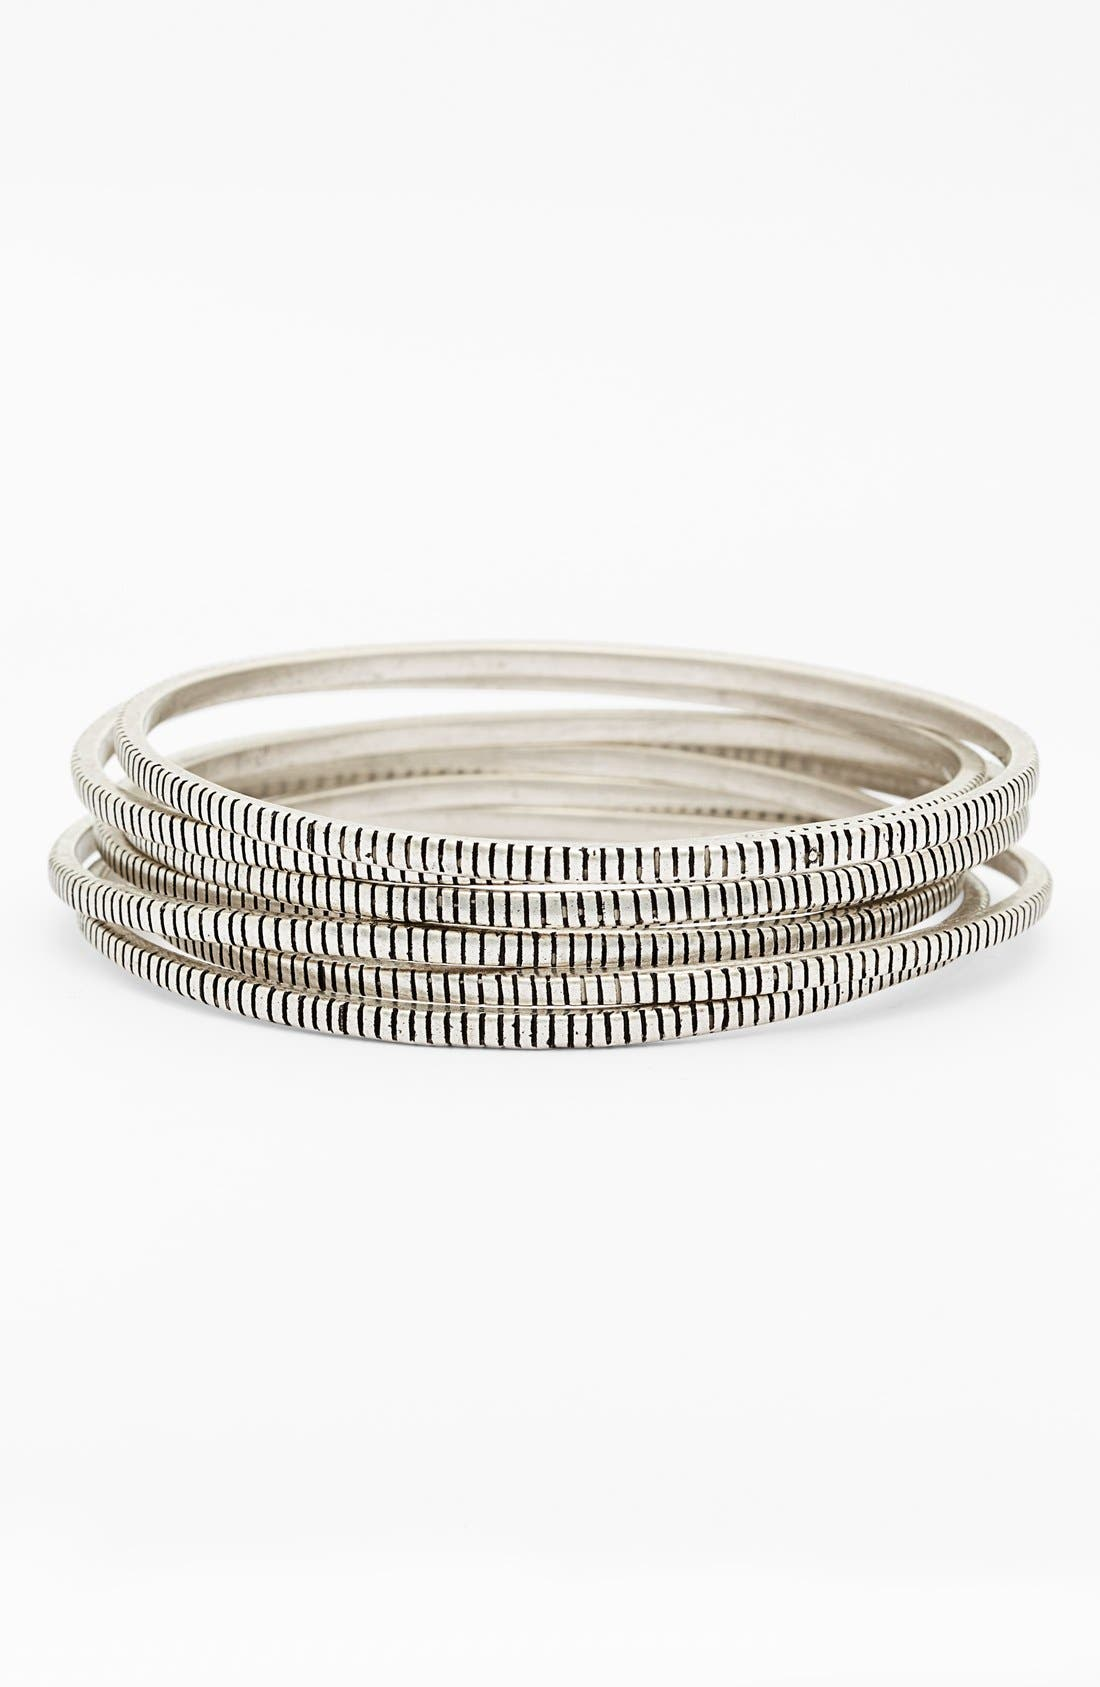 Alternate Image 1 Selected - Rebecca Minkoff 'Jewel Box' Etched Bangles (Set of 7)